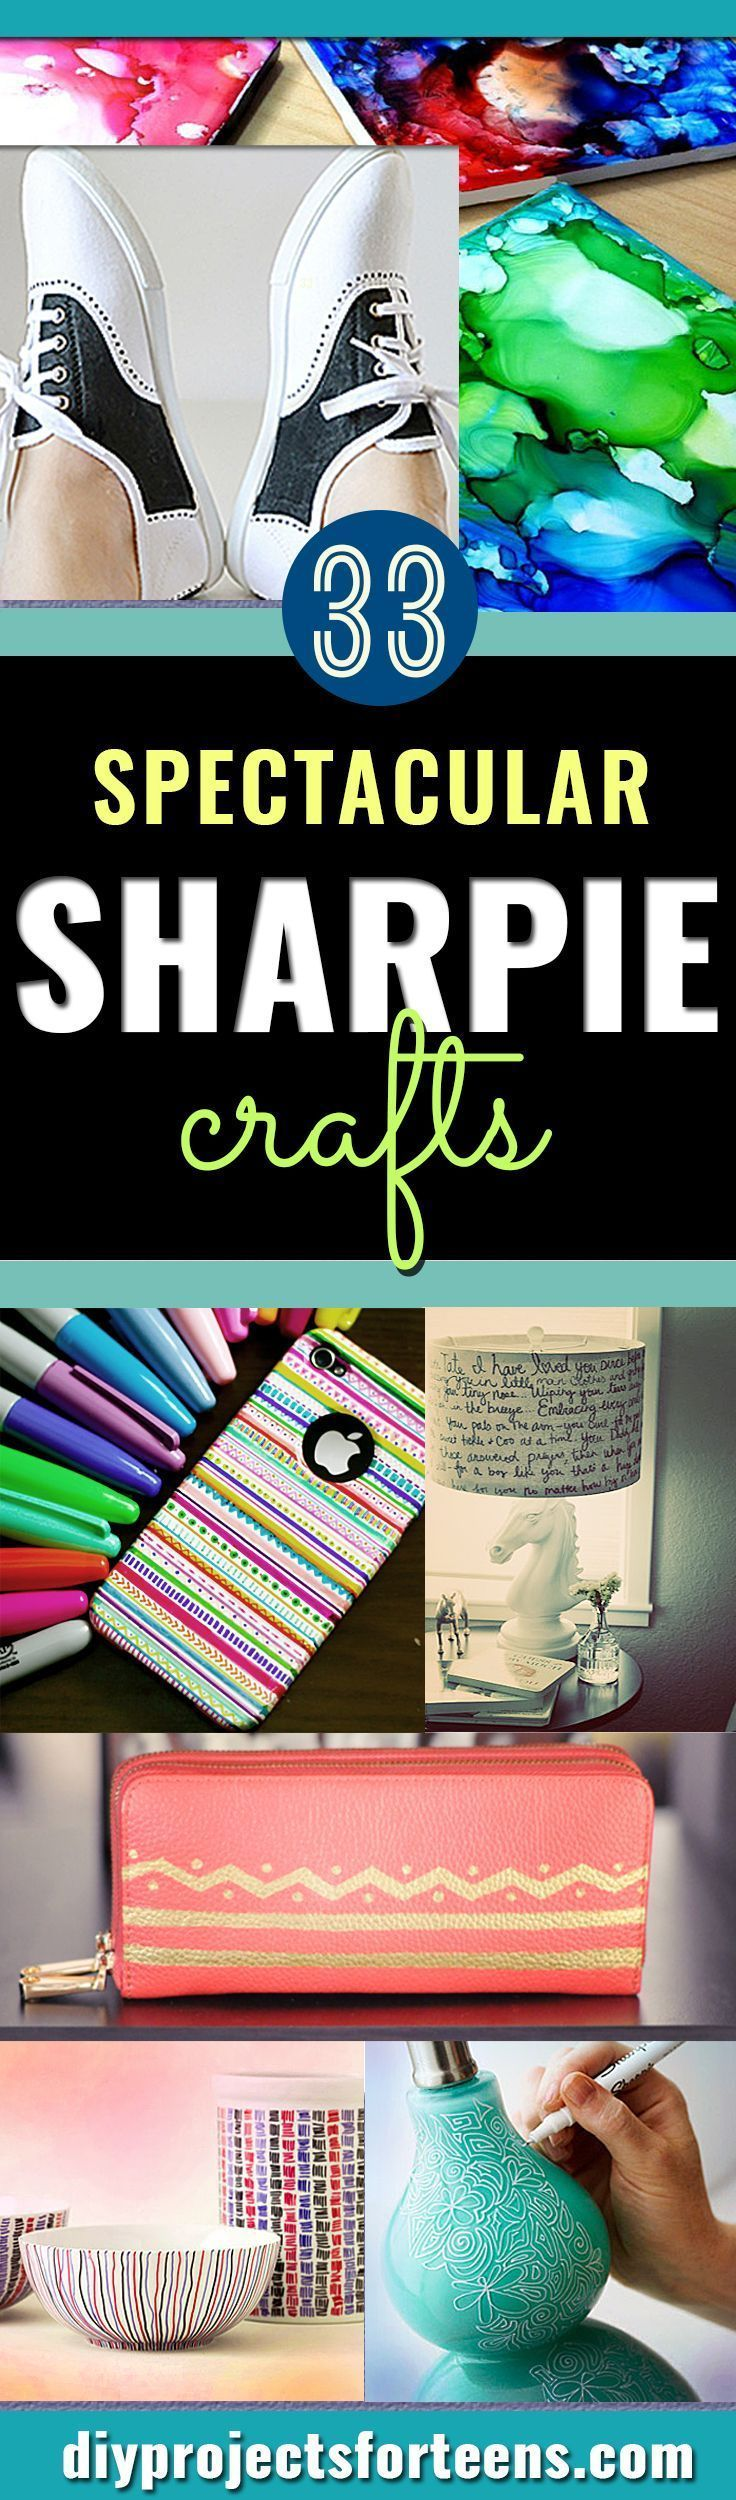 33 Cool Sharpie Crafts and DIY Project